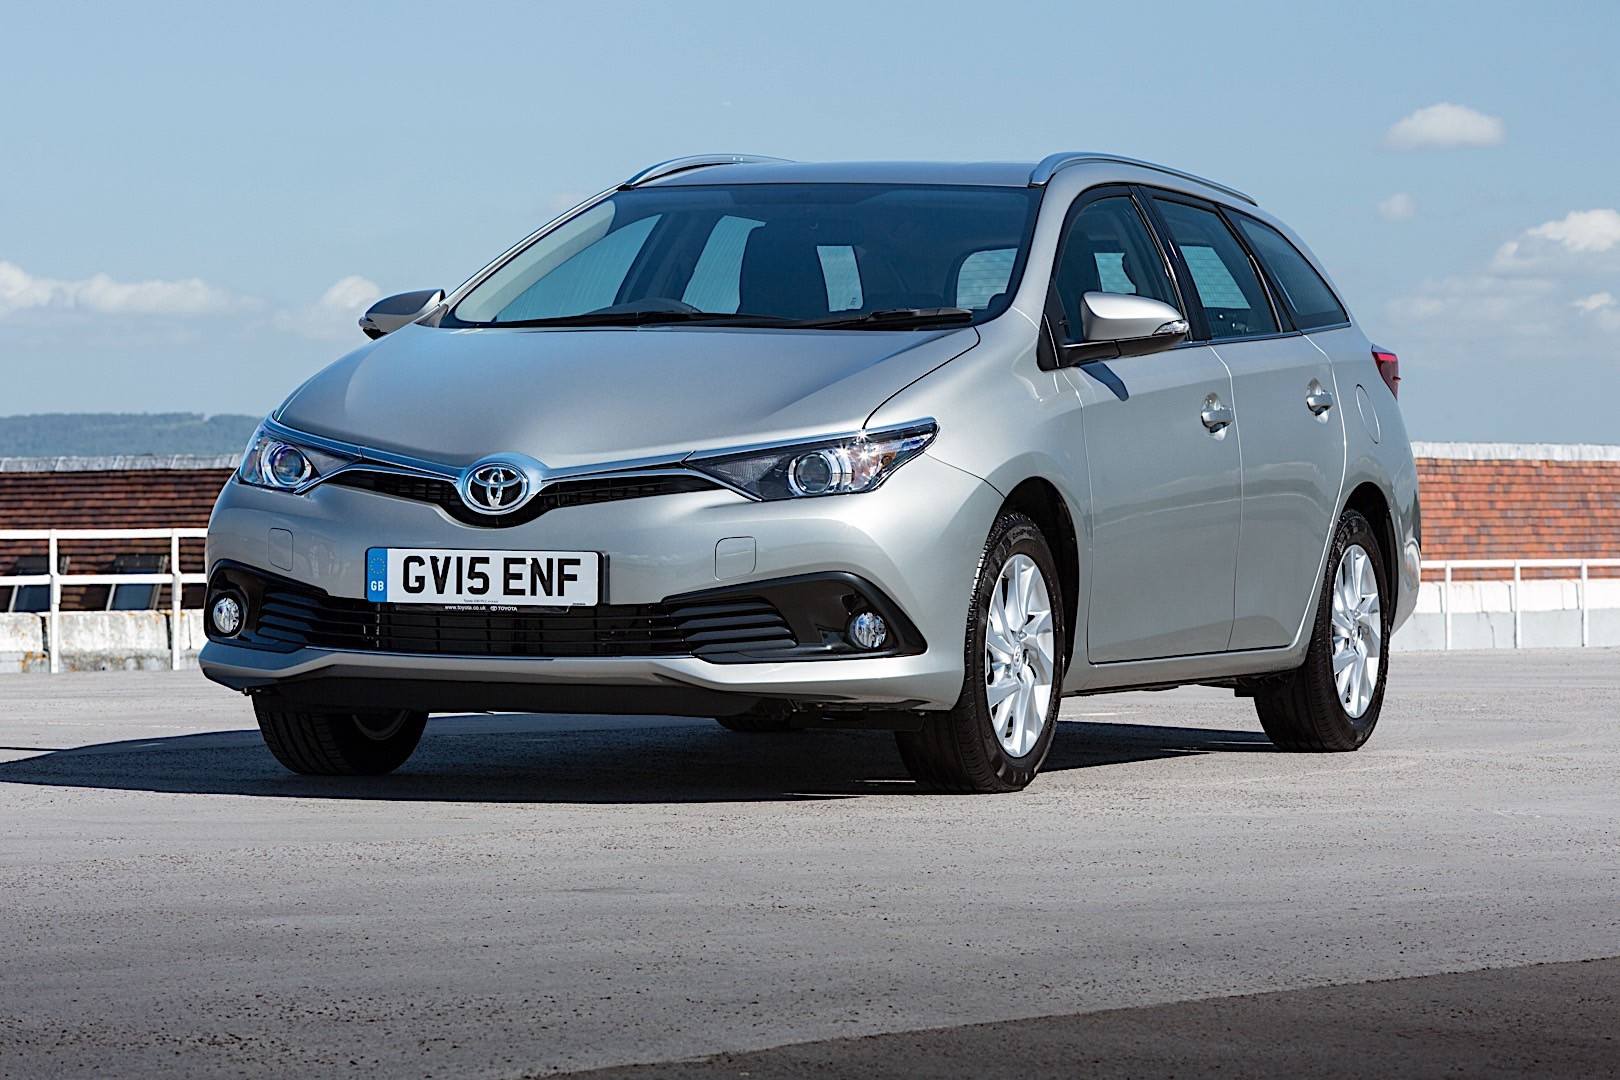 auris toyota touring sports autoevolution oldham chronicle exterior